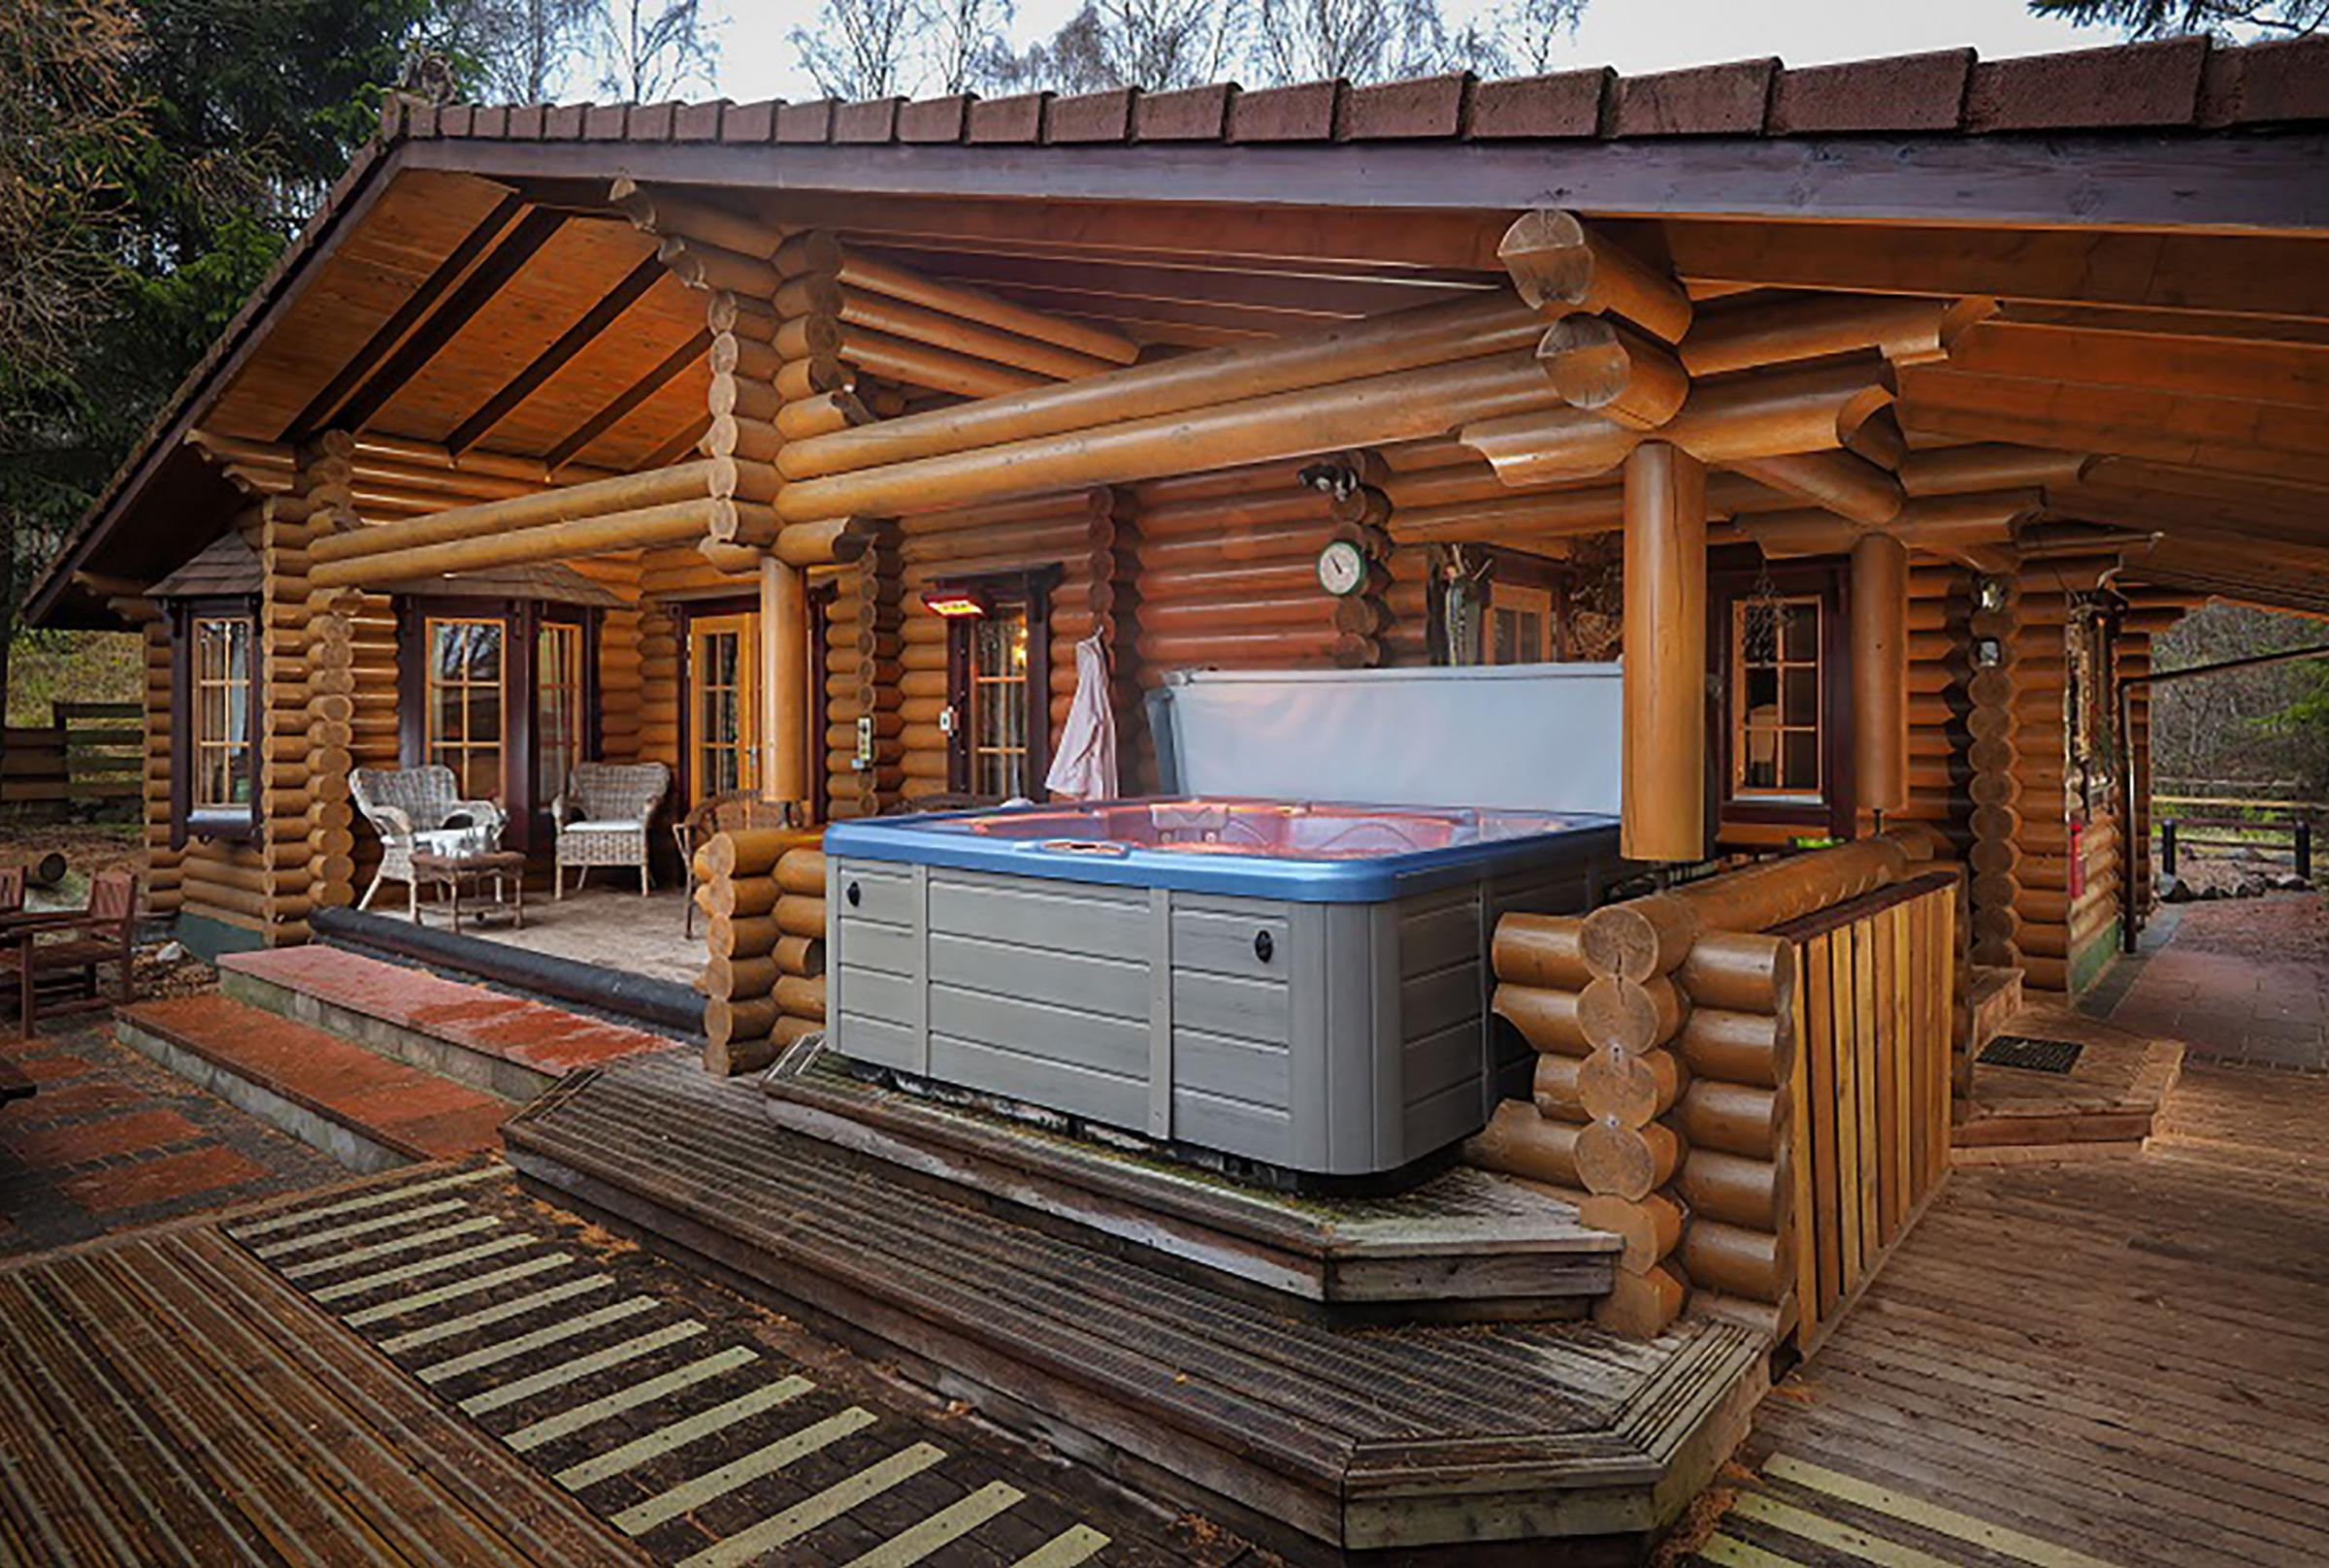 Hot tubs, such as that at Beaver Creek, have become the 'must have' facility in accommodation